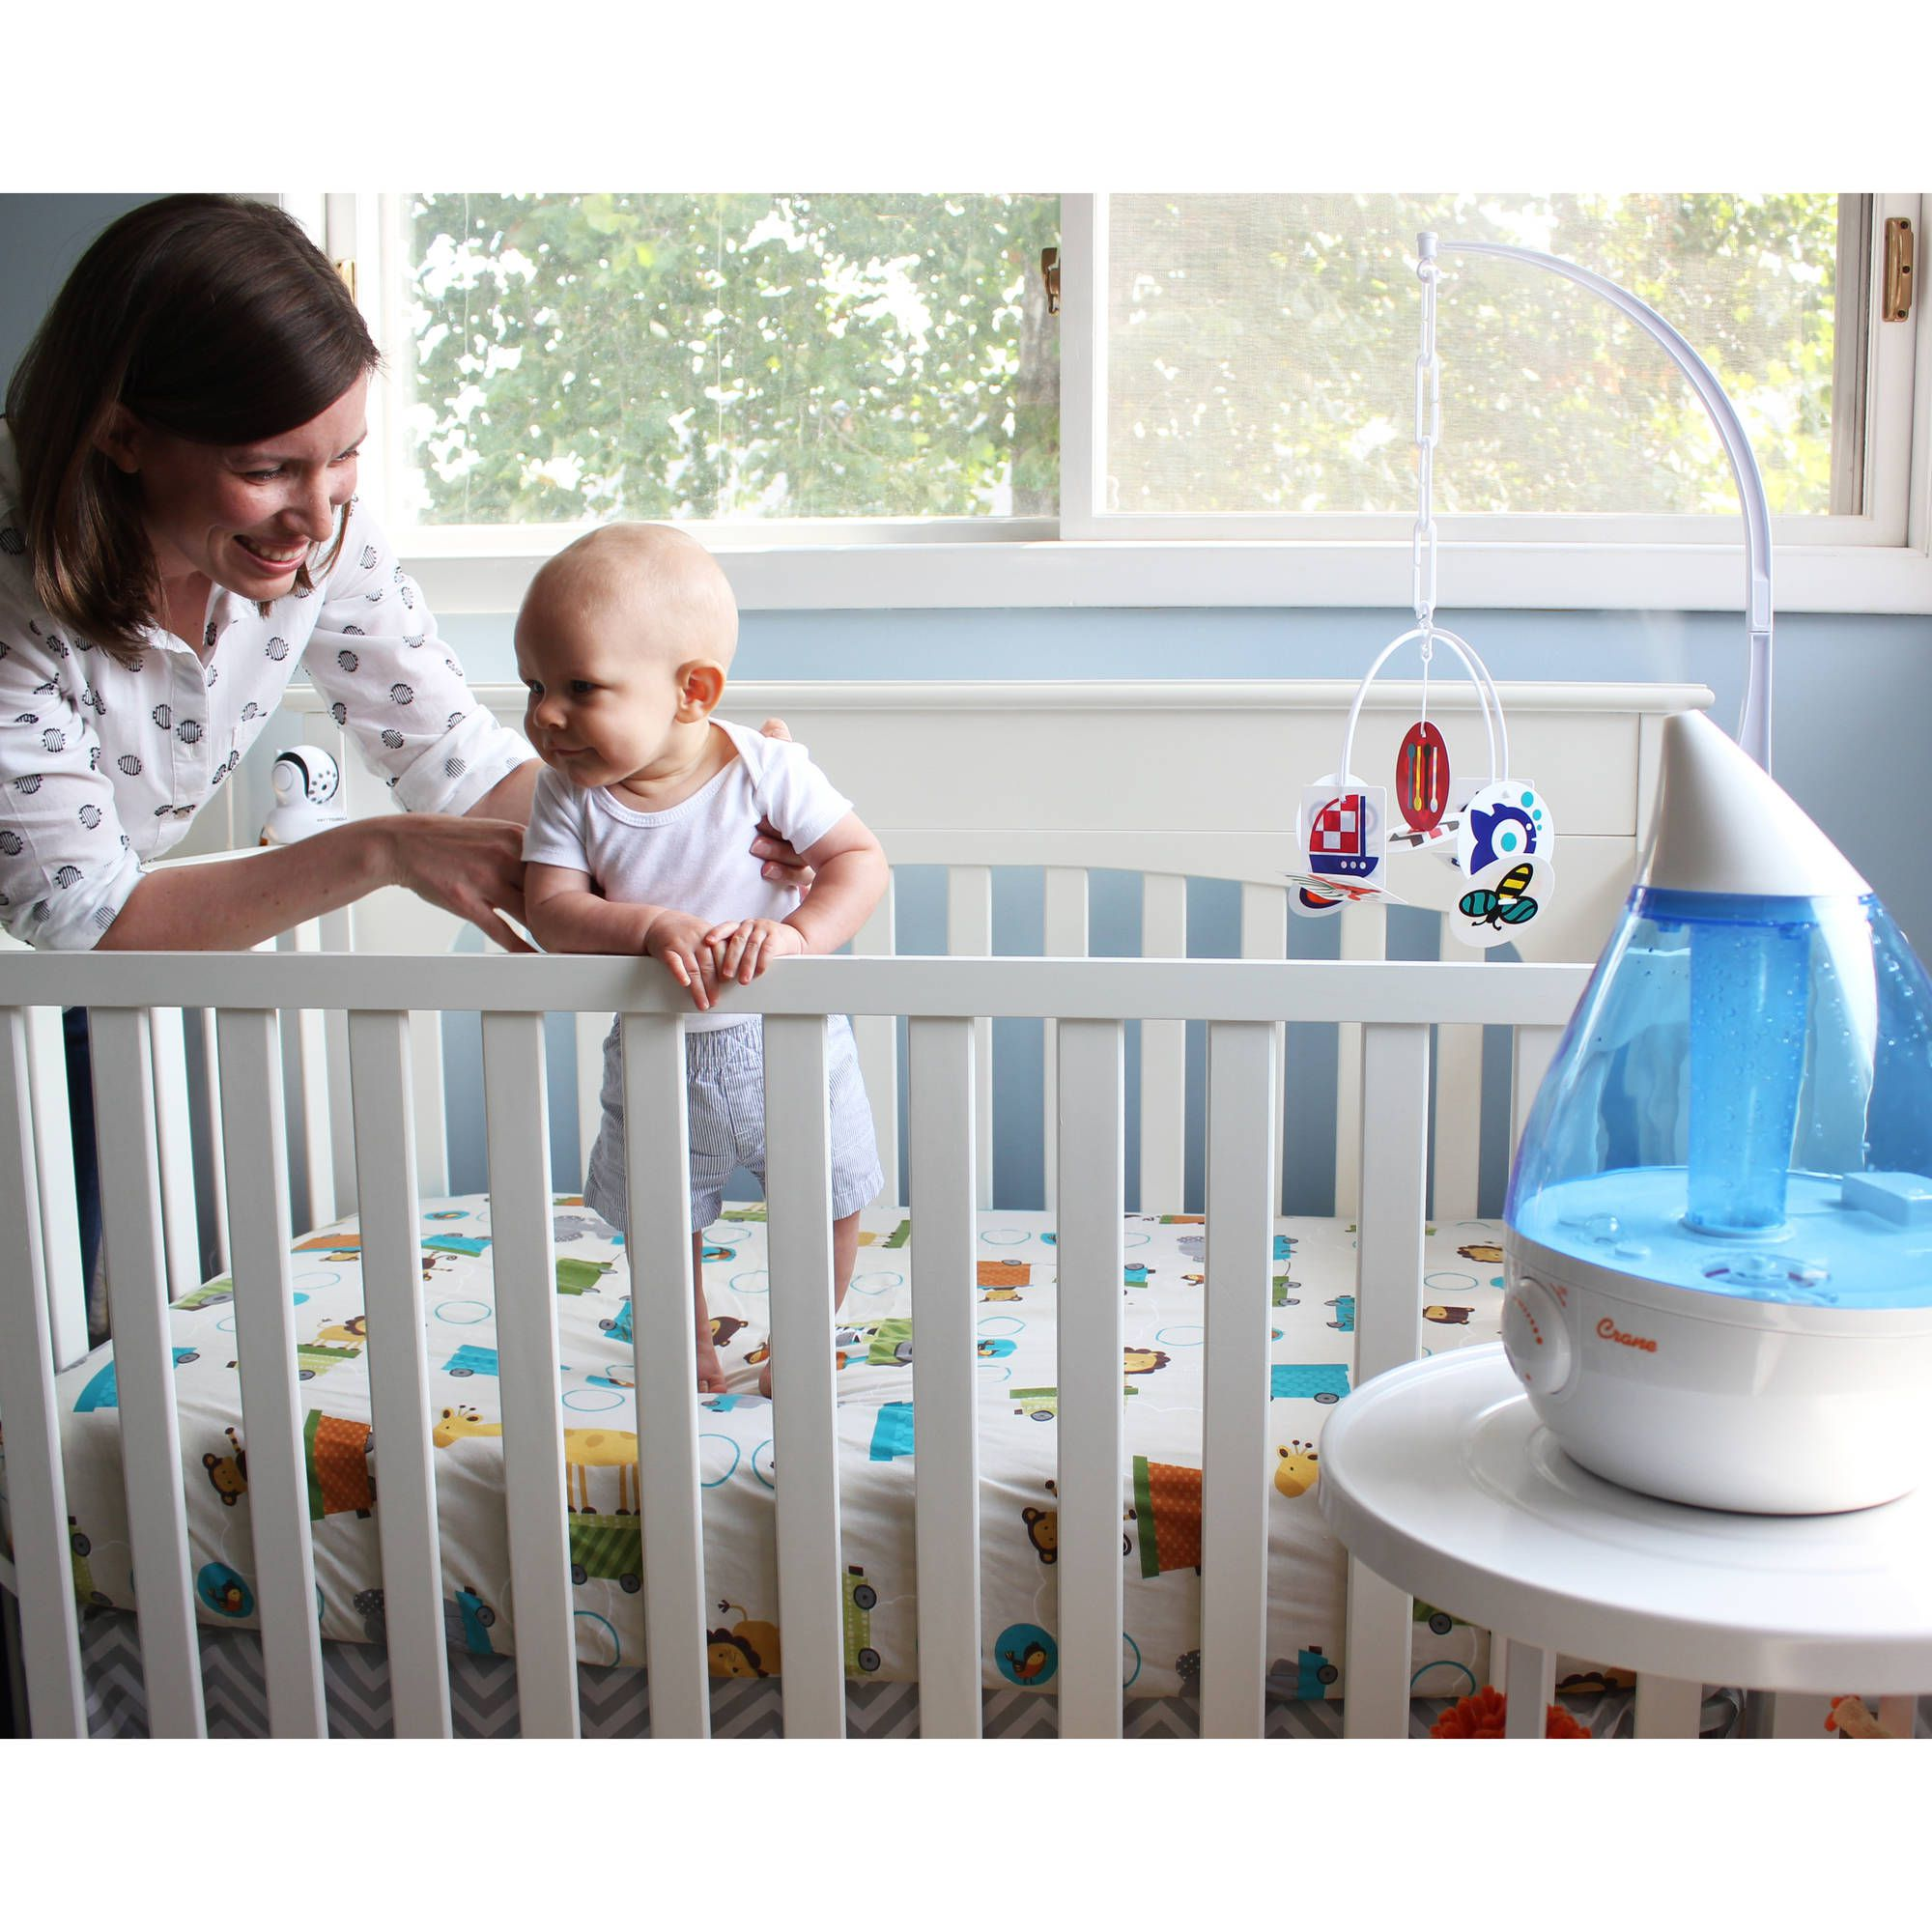 The 7 Best Humidifiers For Babies Of 2021